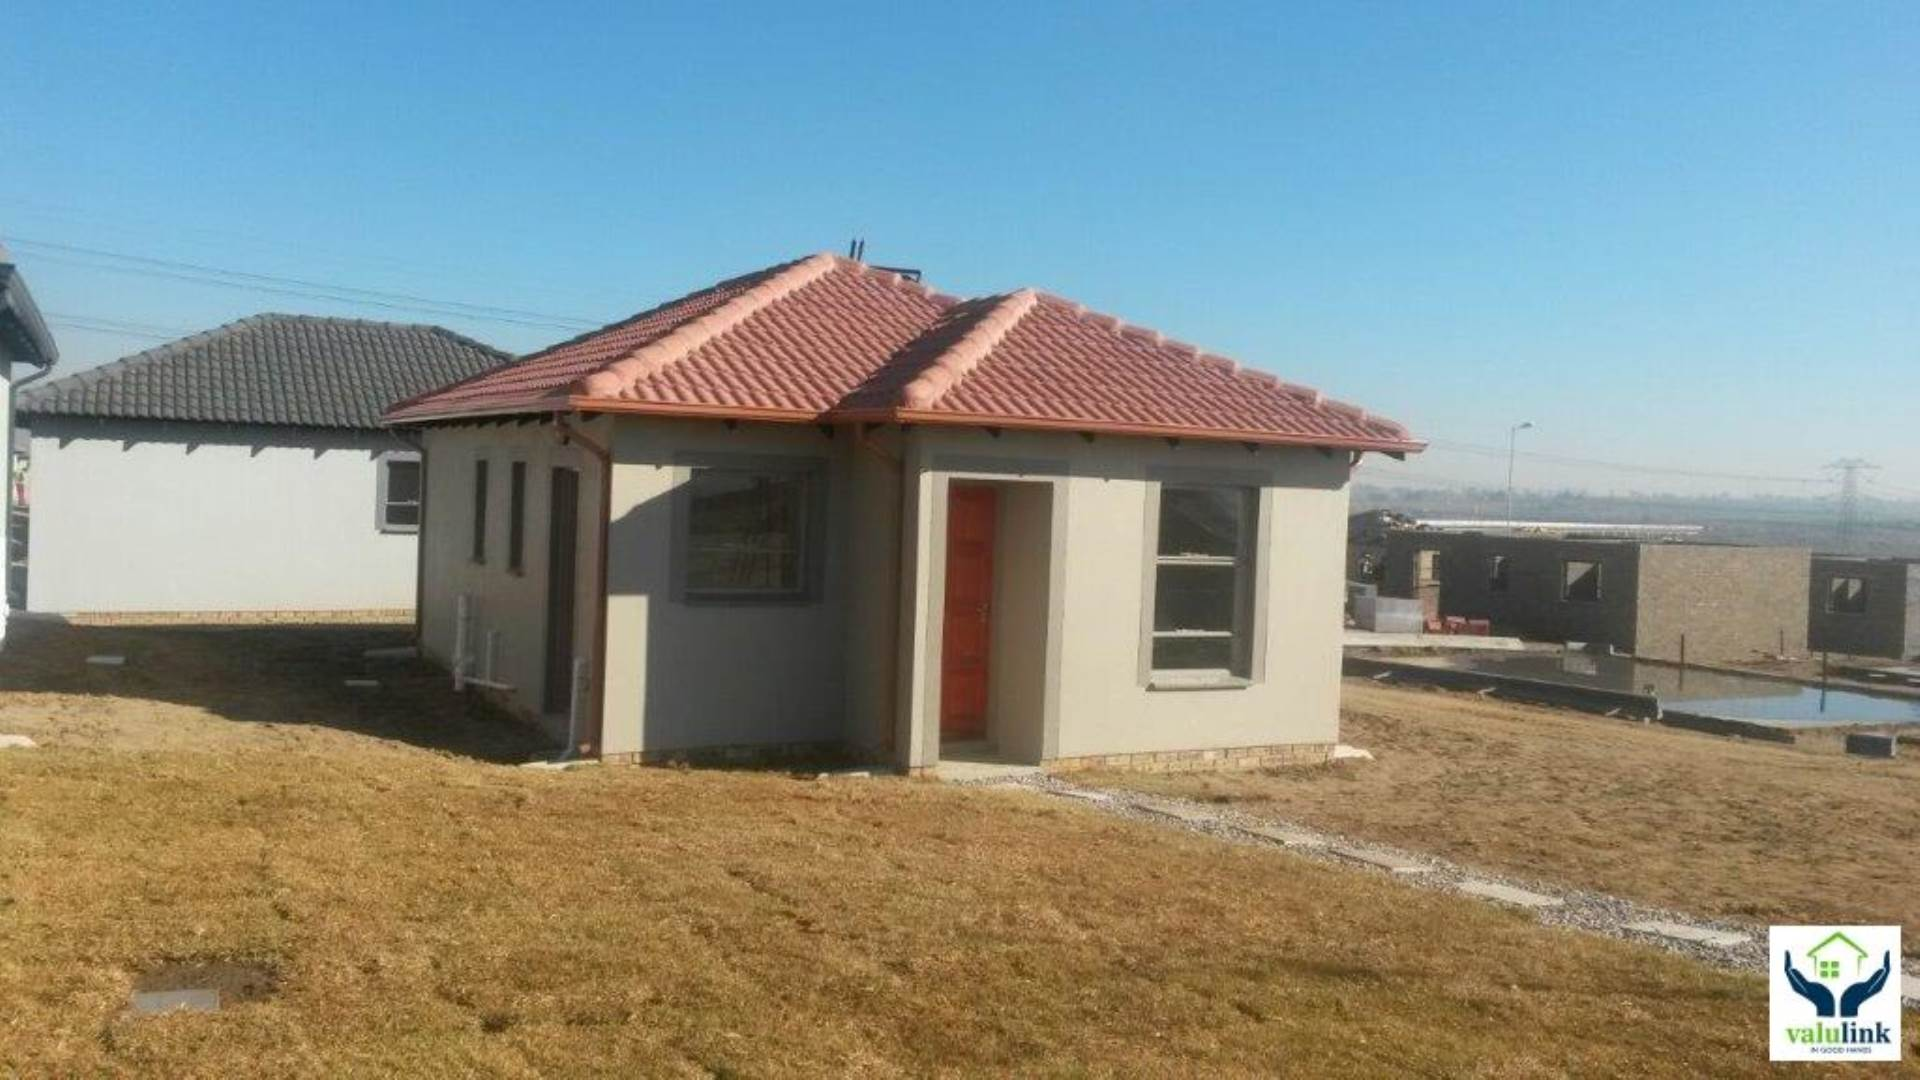 Home Loan Repayment Calculator South Africa